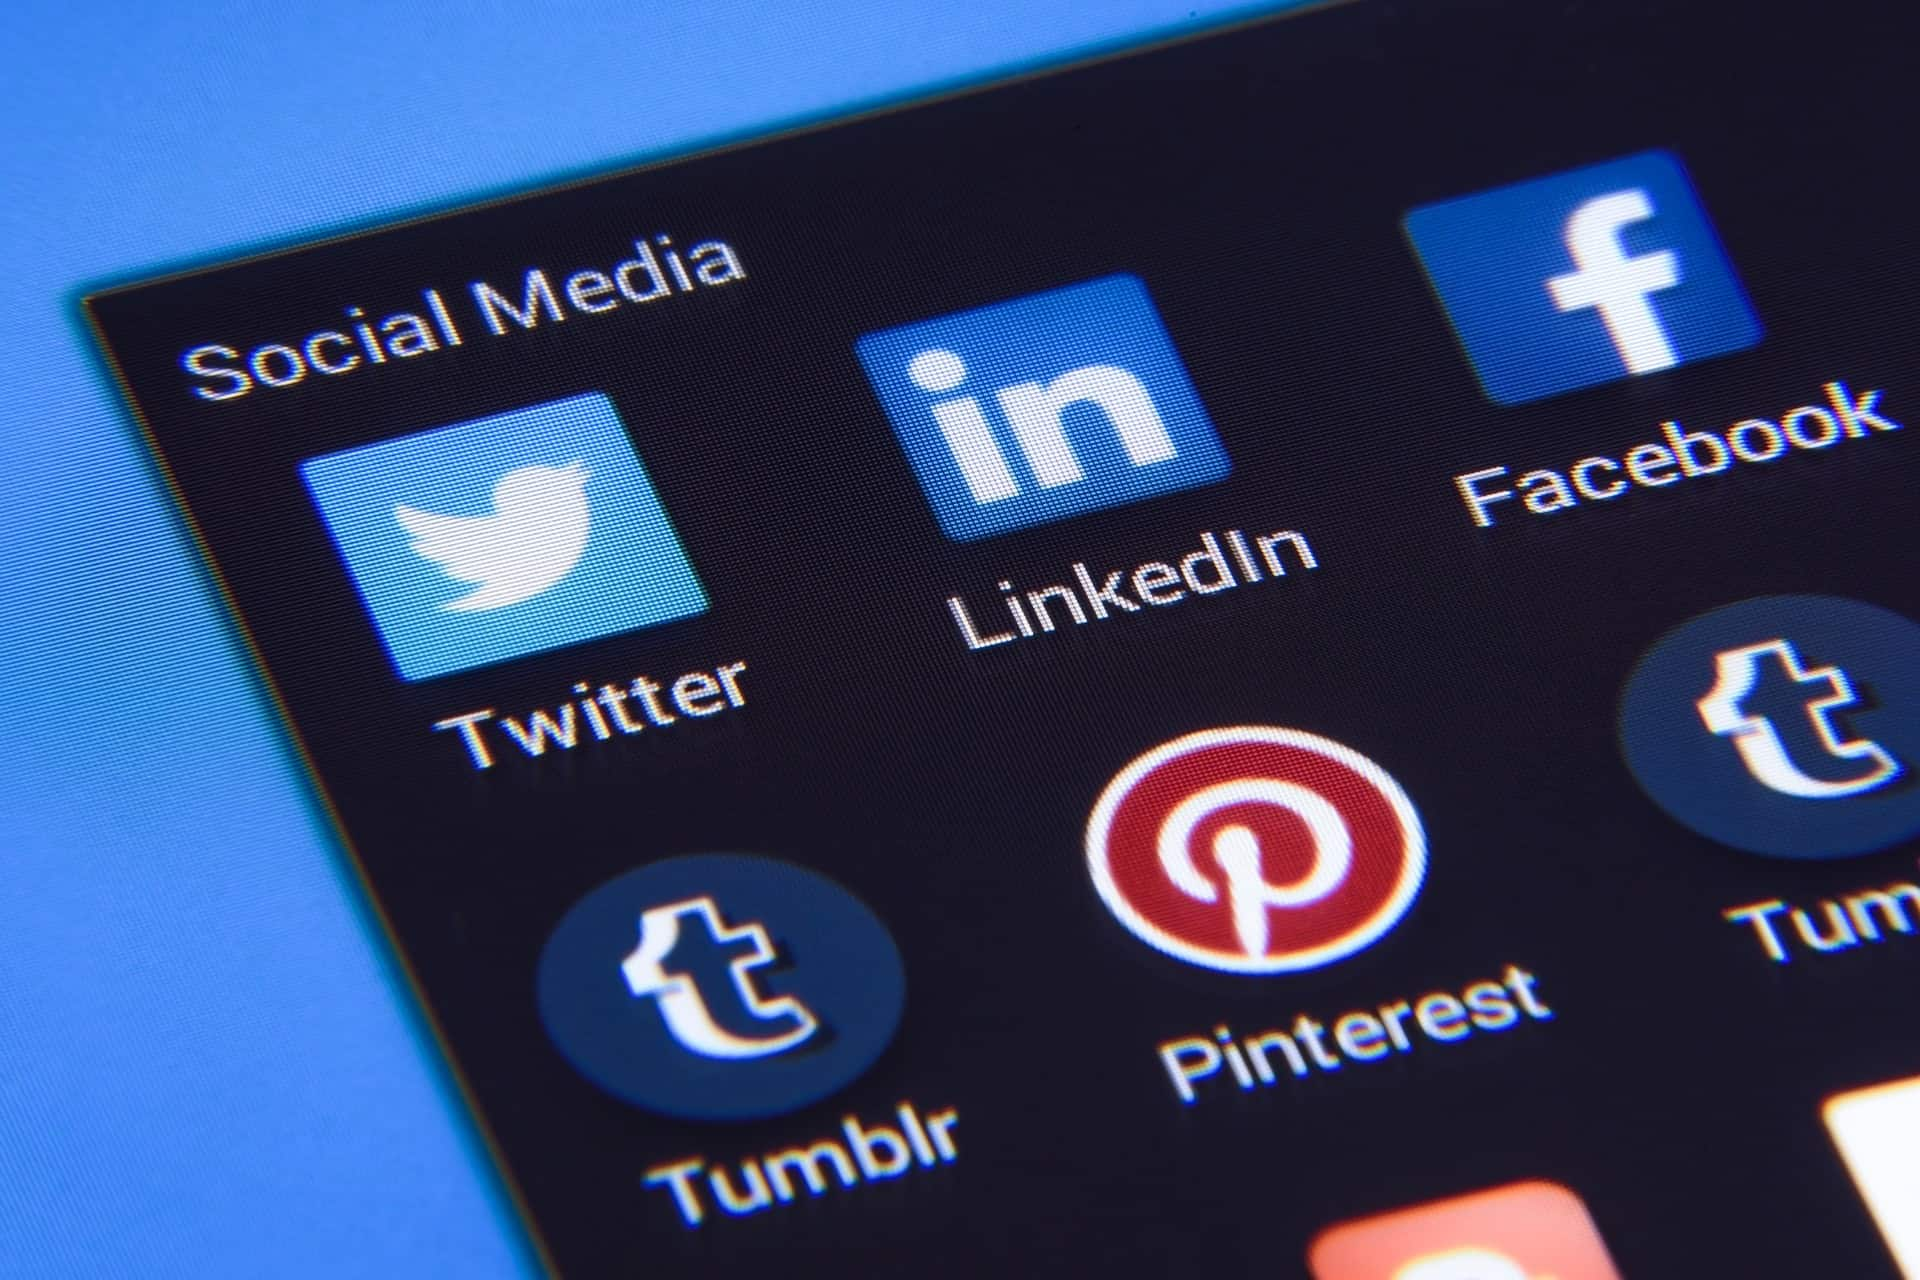 What You Need To Know About Social Media Marketing